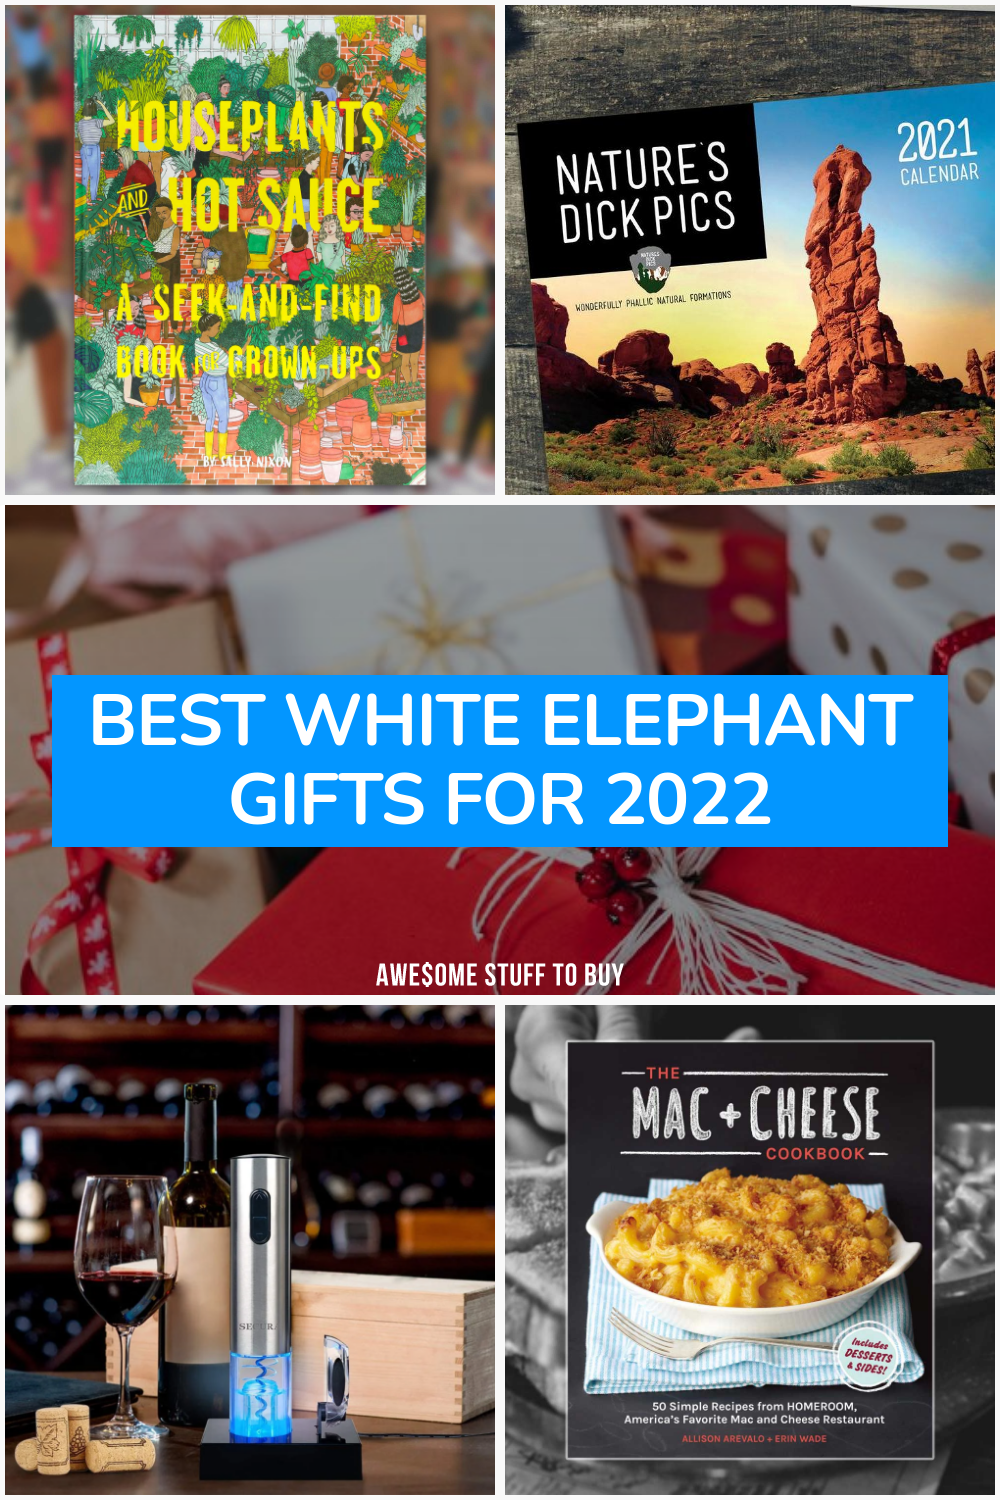 White Elephant Gift Ideas // Awesome Stuff to Buy